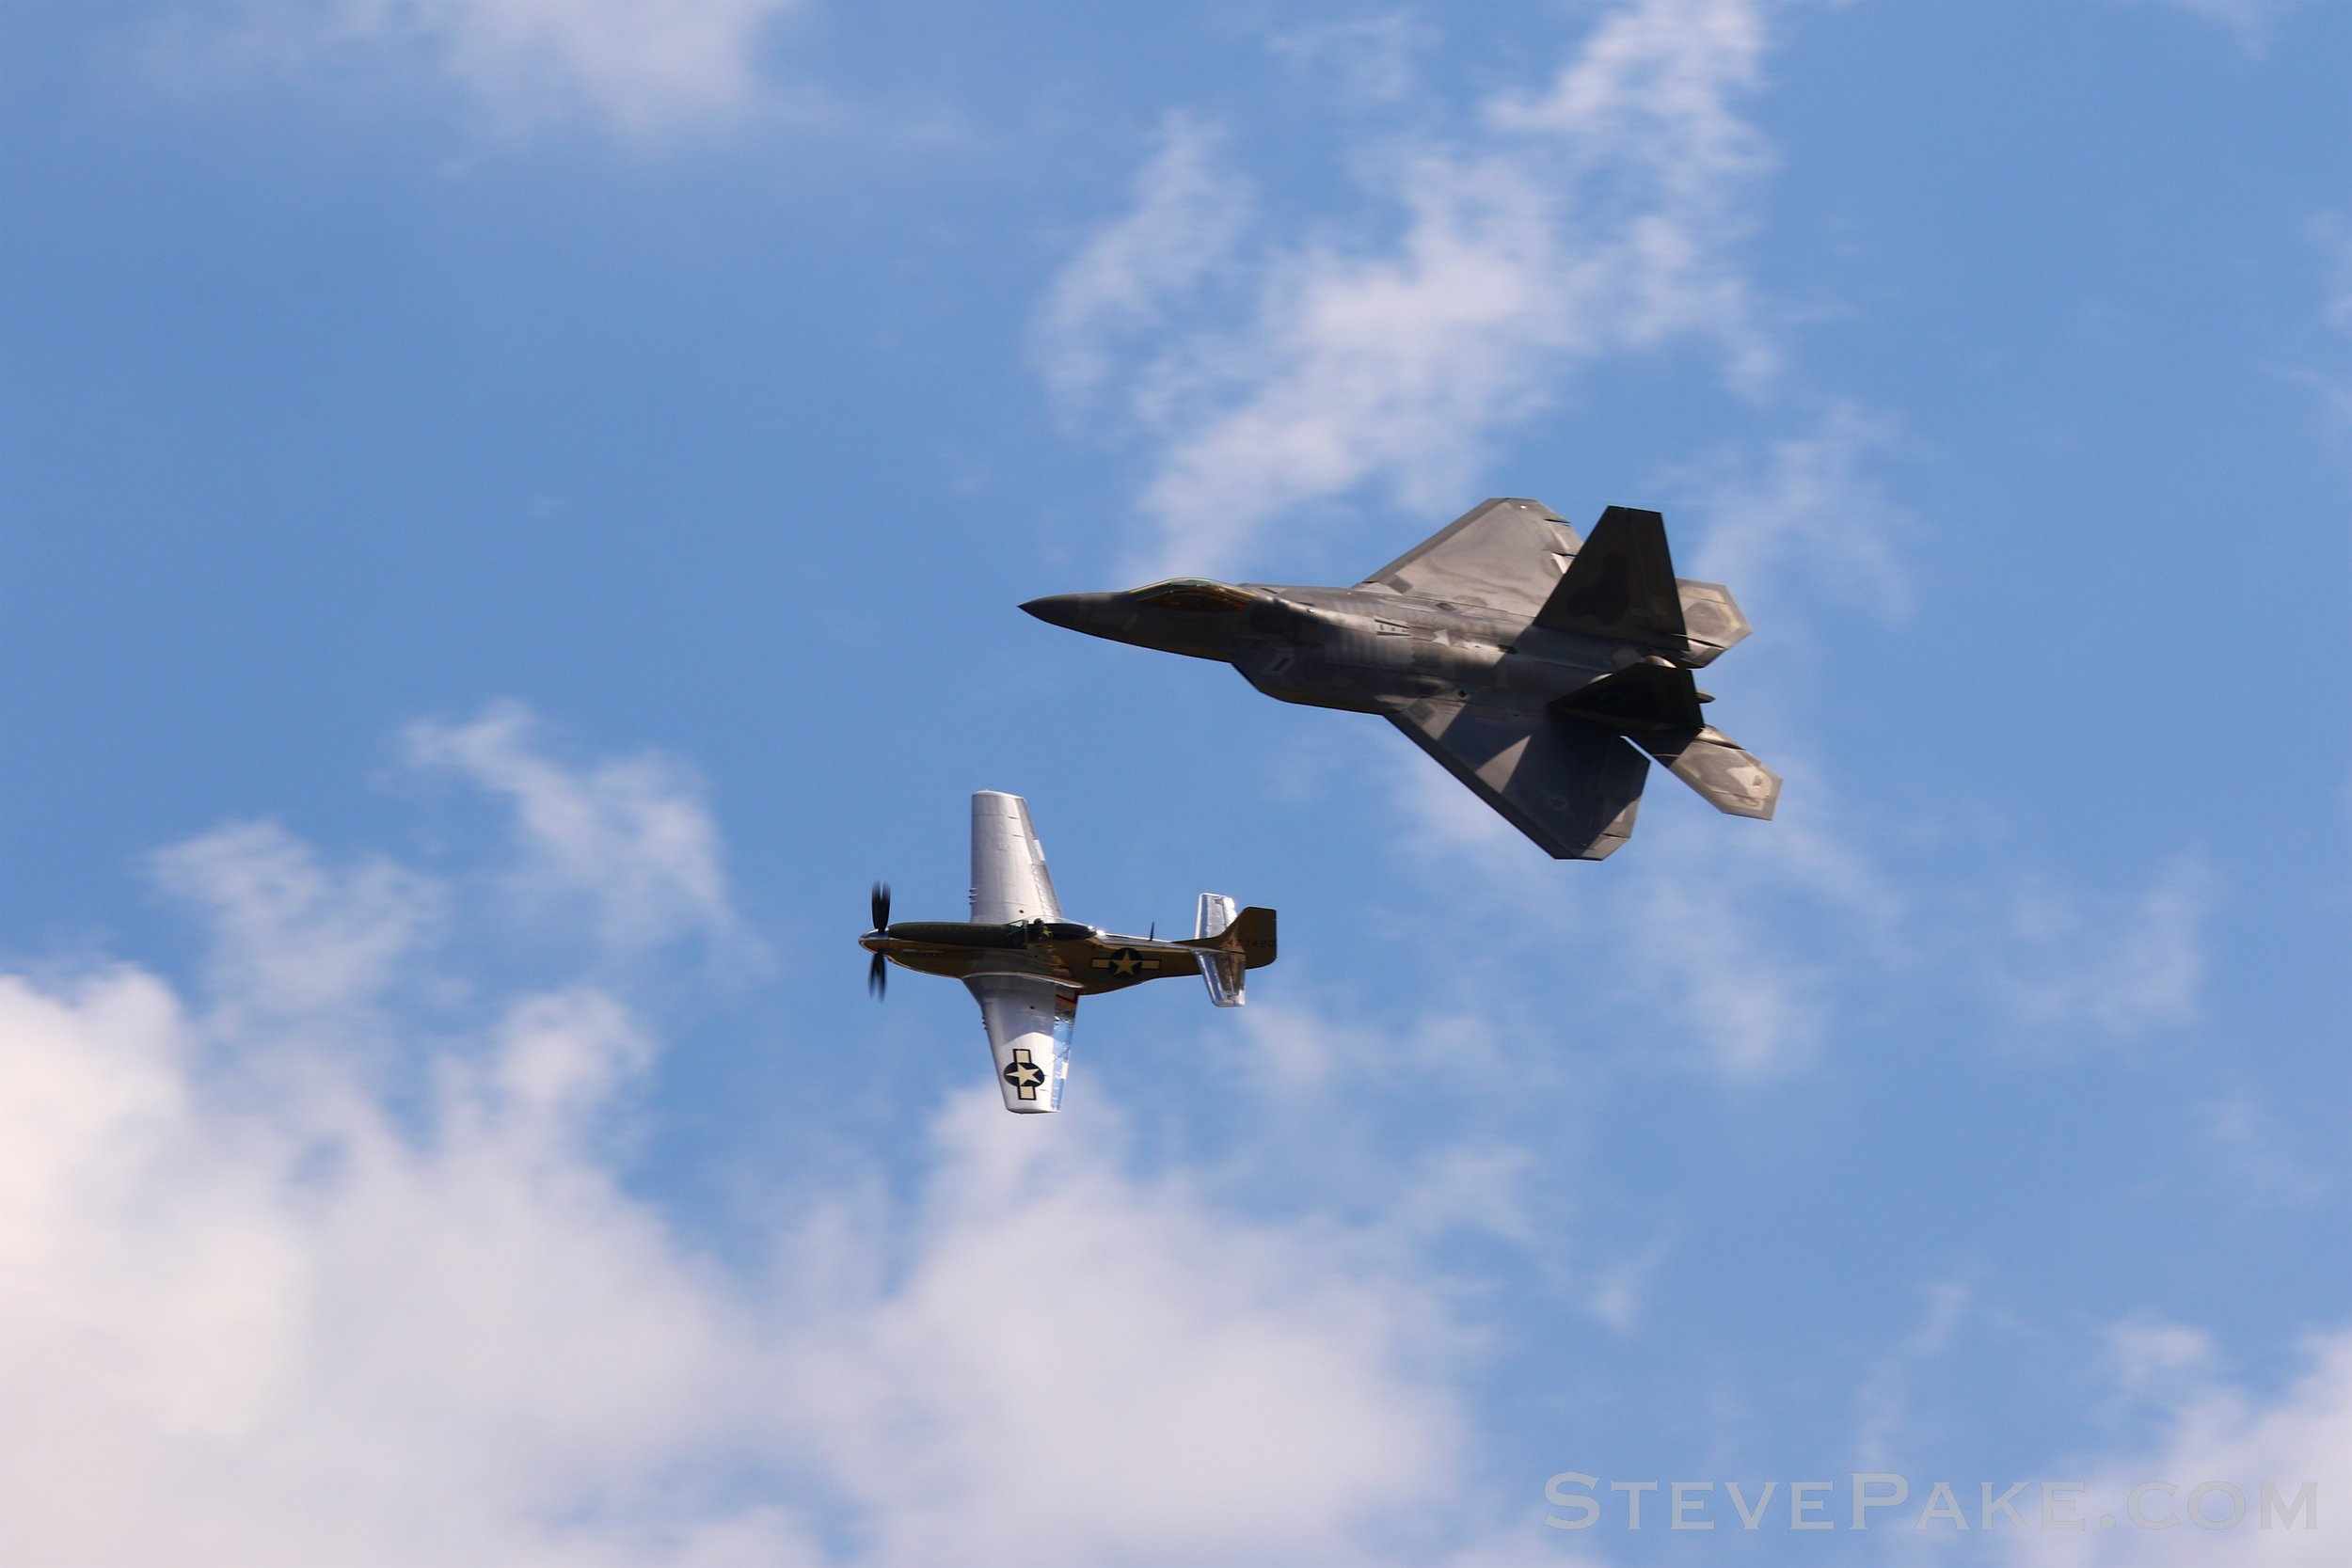 P-51 Mustang and F-22 Raptor Heritage Flight